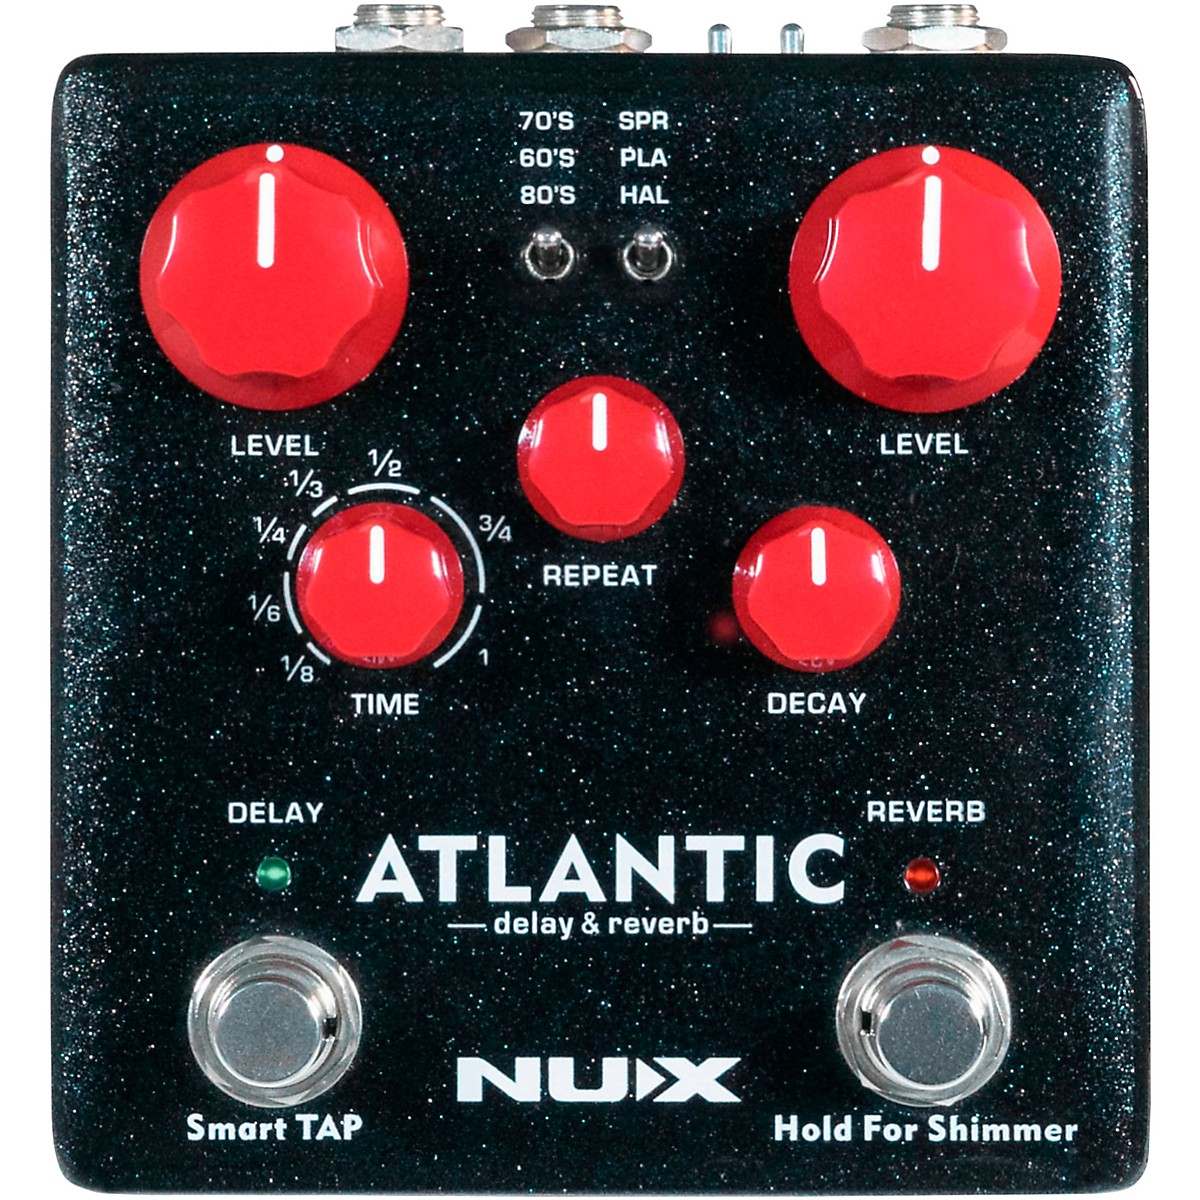 NUX Atlantic Delay & Reverb Effects Pedal